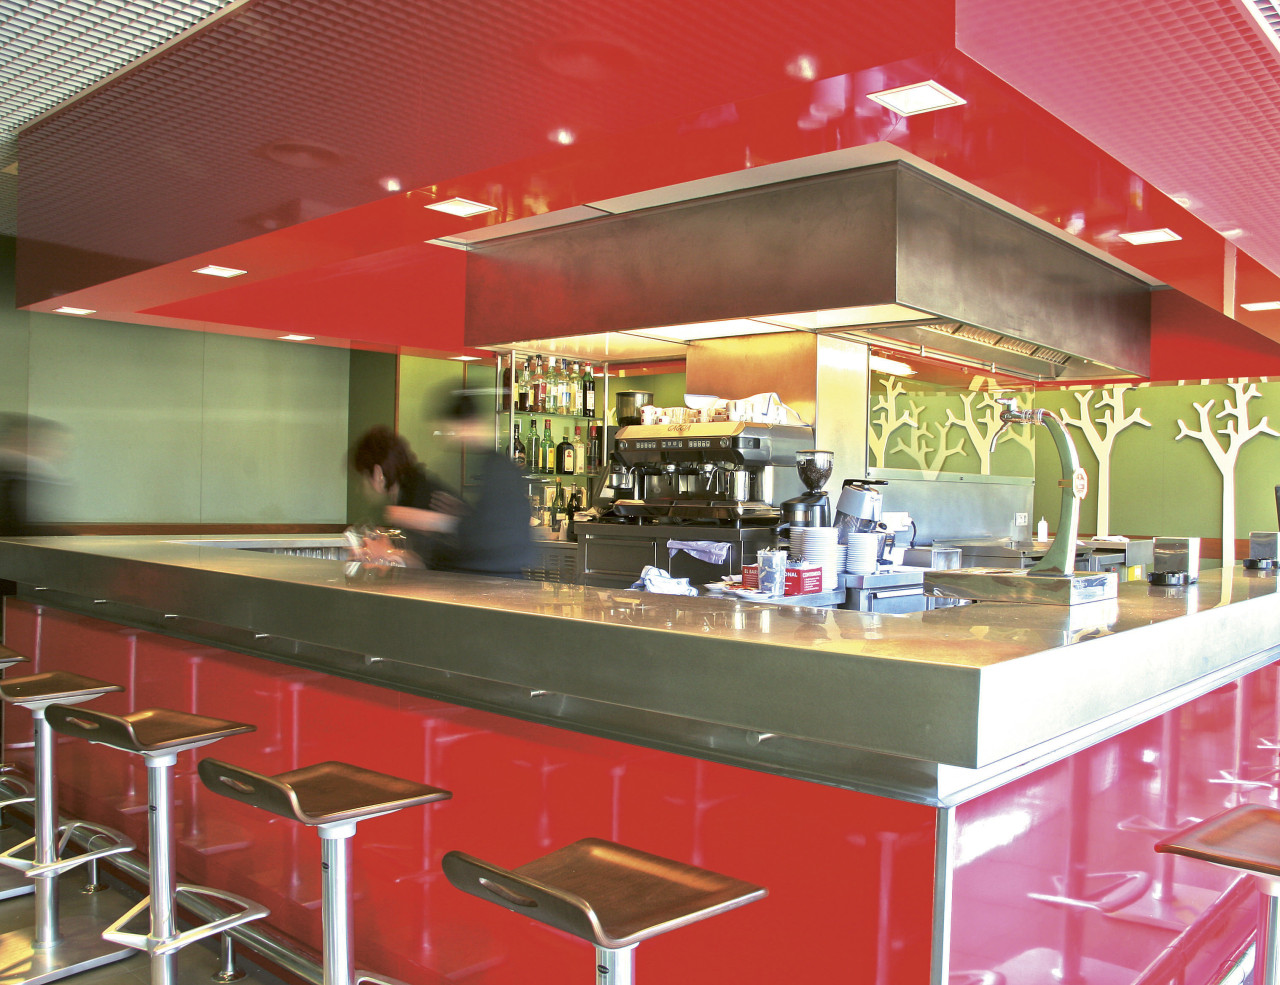 Formica ColorCore transforming interior surfaces cafeteria, fast food, fast food restaurant, interior design, restaurant, red